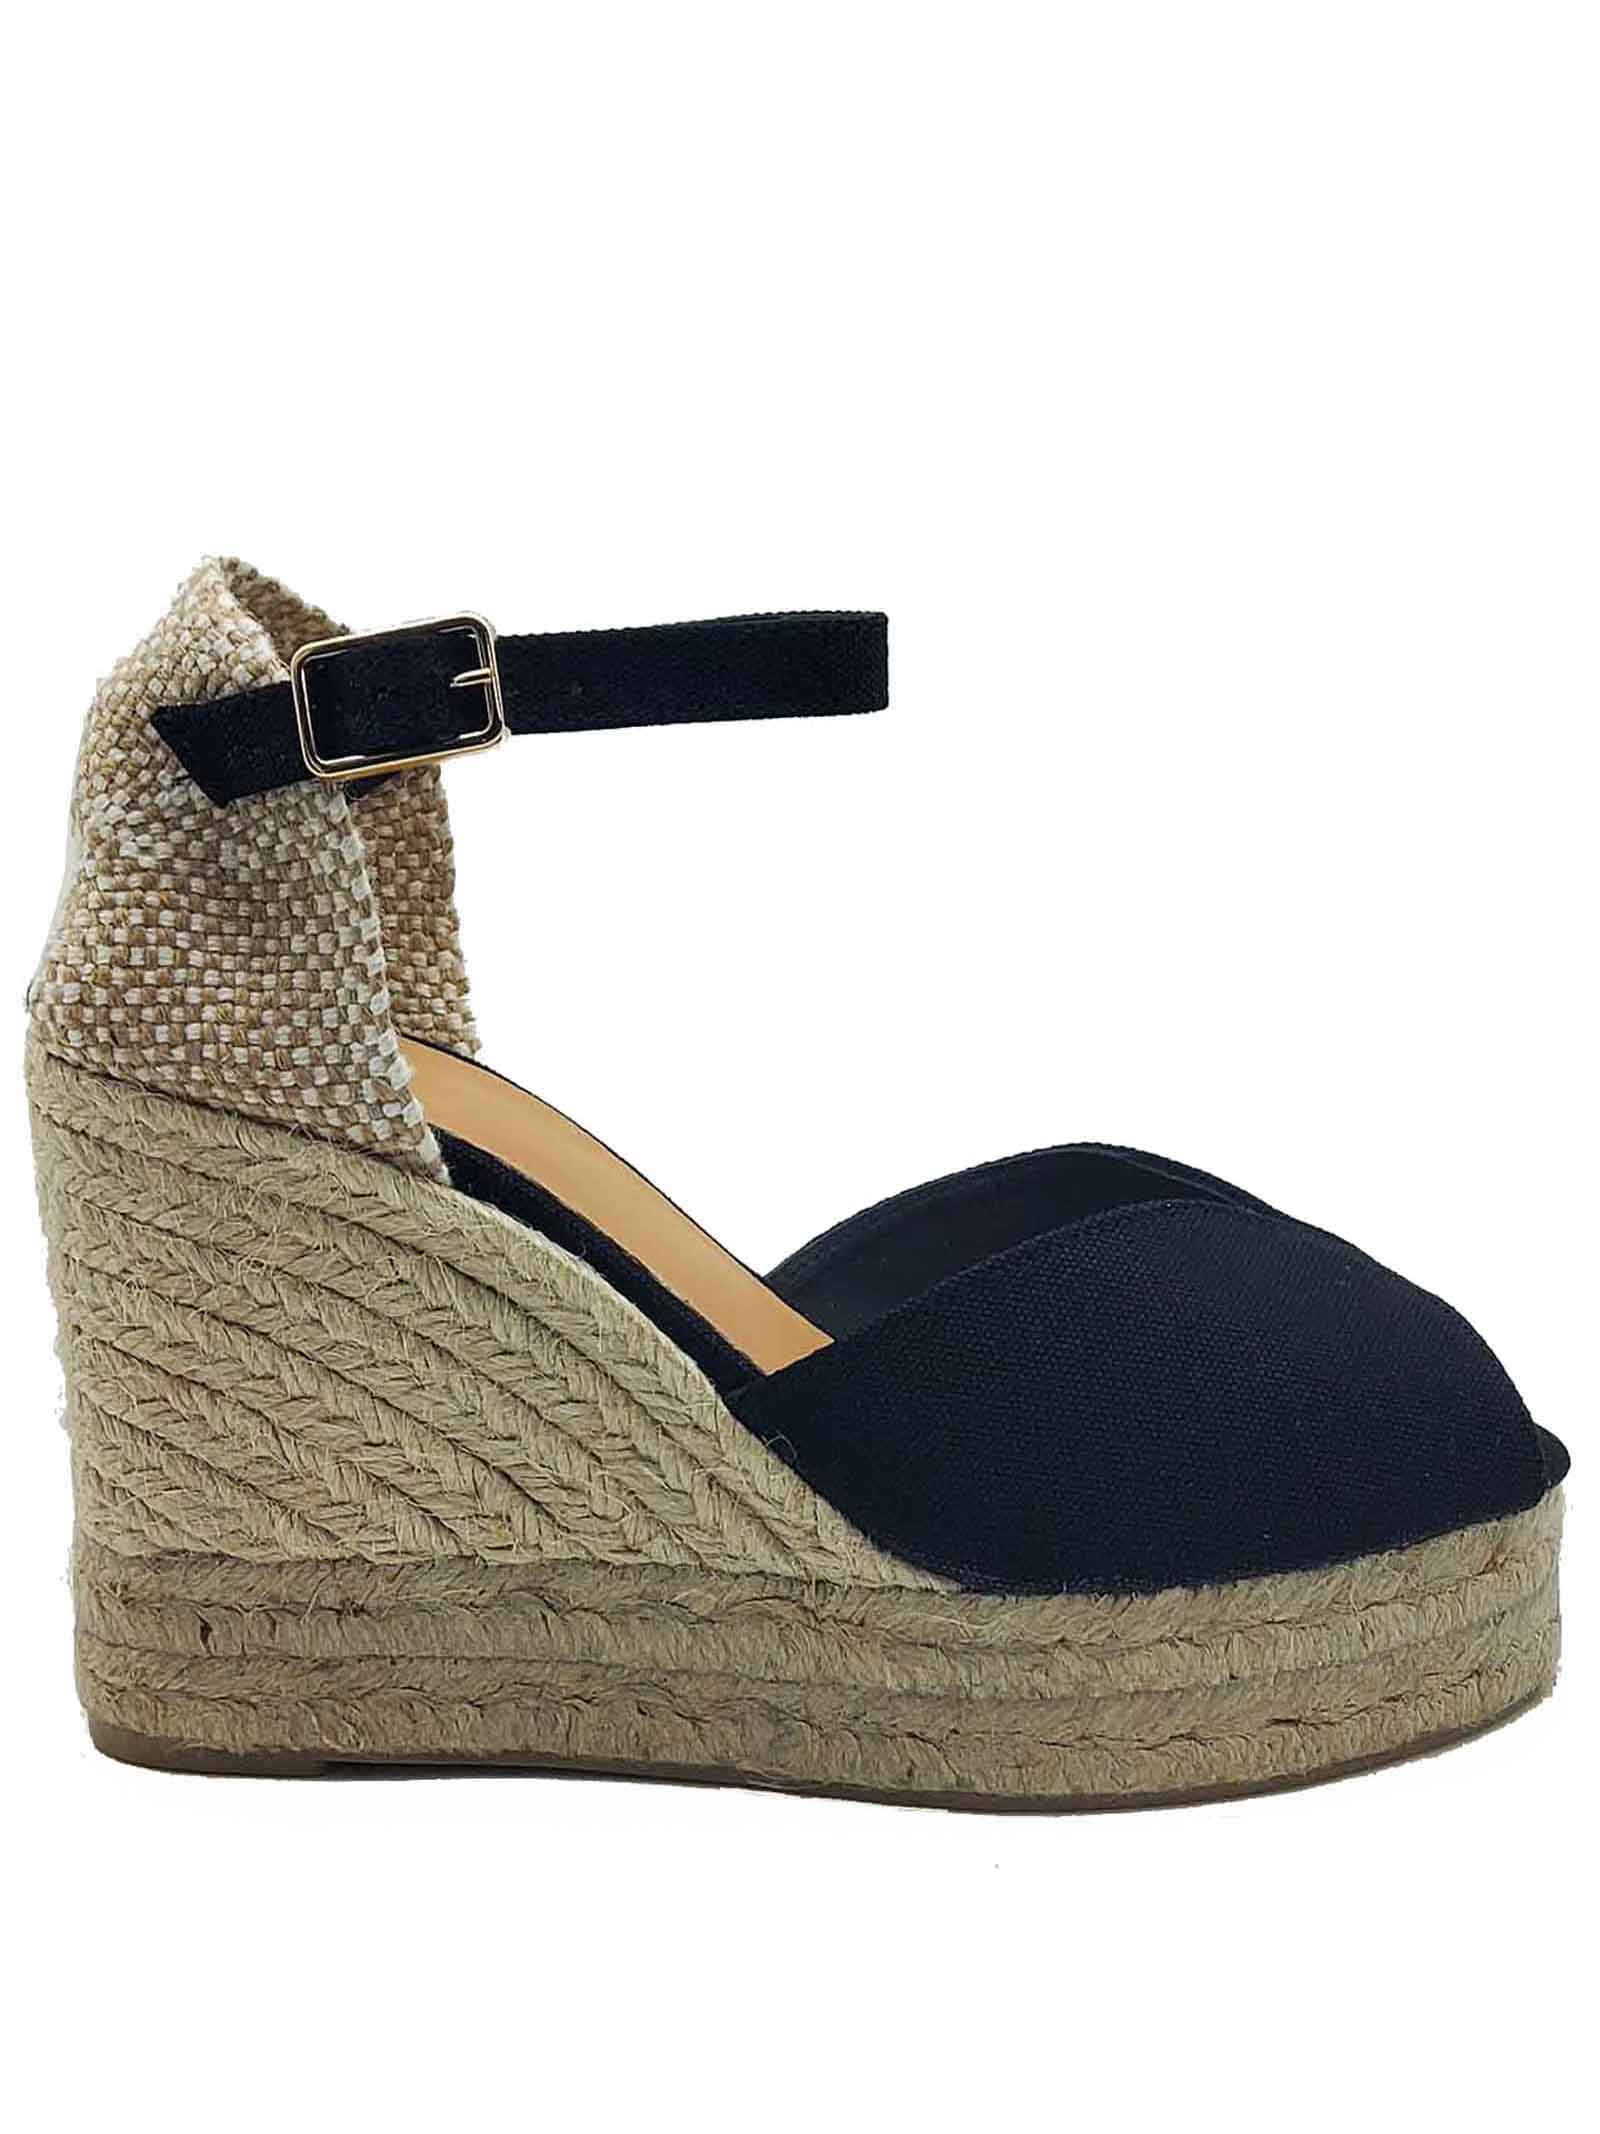 Women's Shoes Sandals Espadrilles in Pink Canvas with Ankle Strap and High Wedge in Rope Castaner | Wedge Sandals | BIANCA001